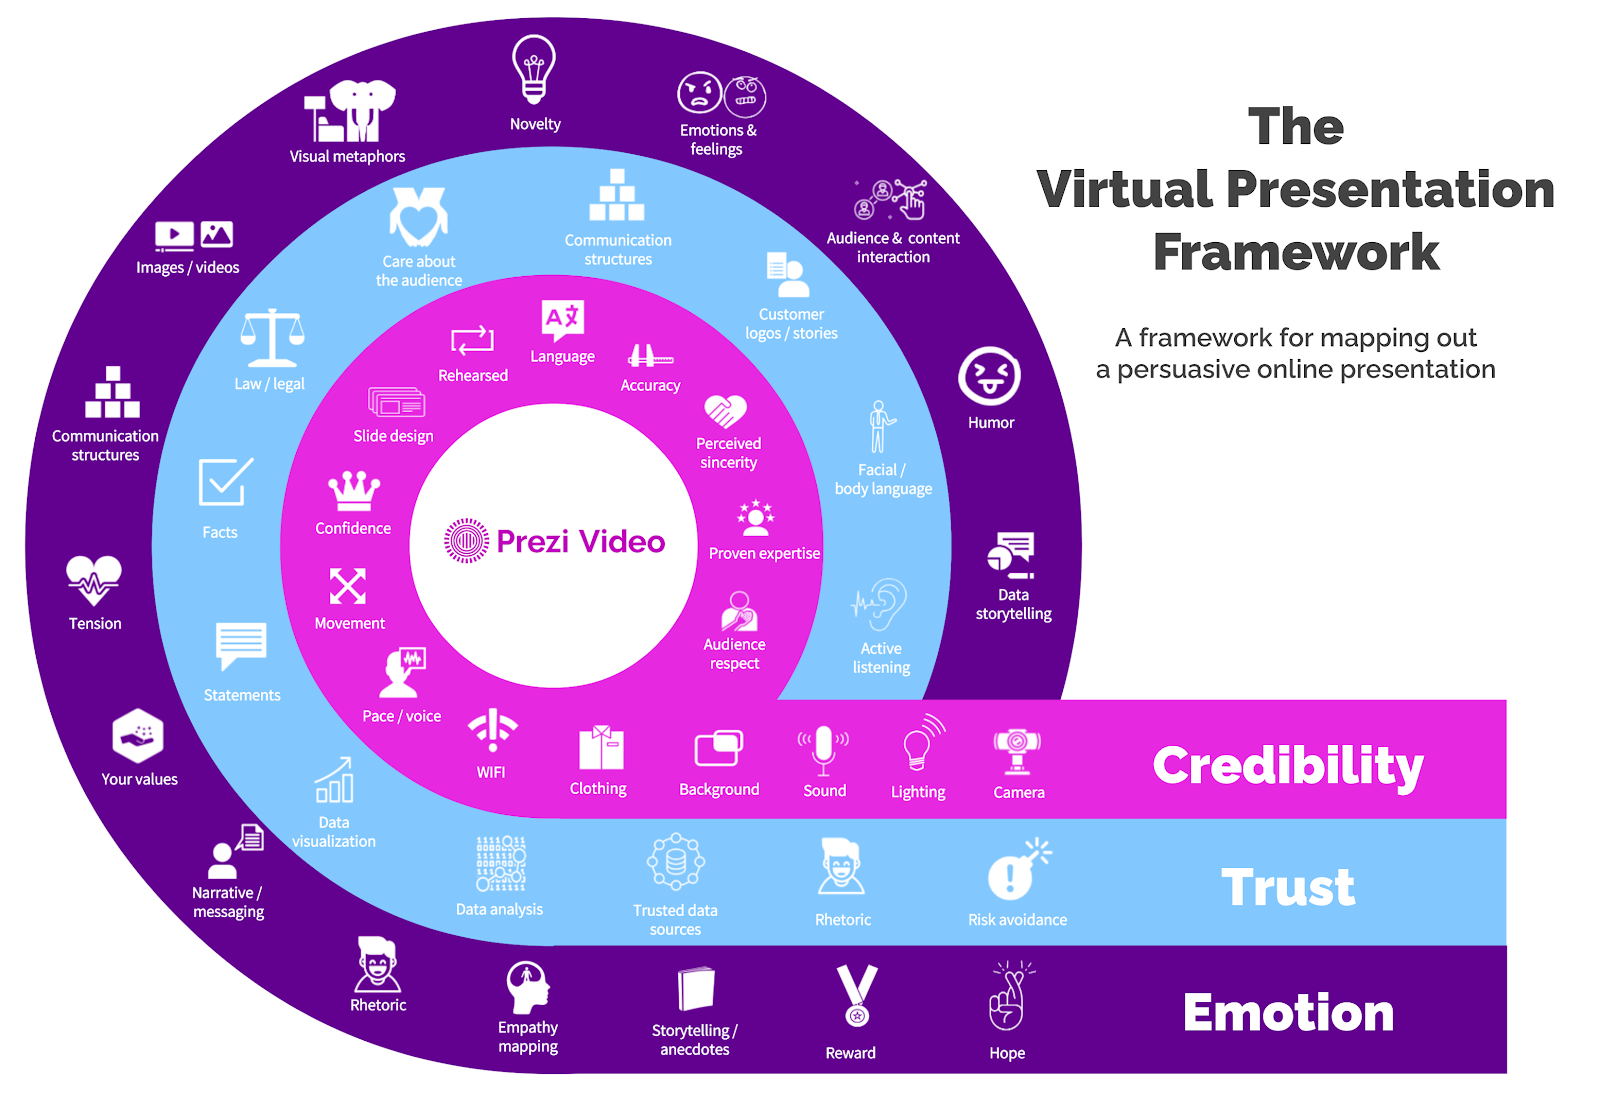 The virtual presentation framework will help you with presenting online.